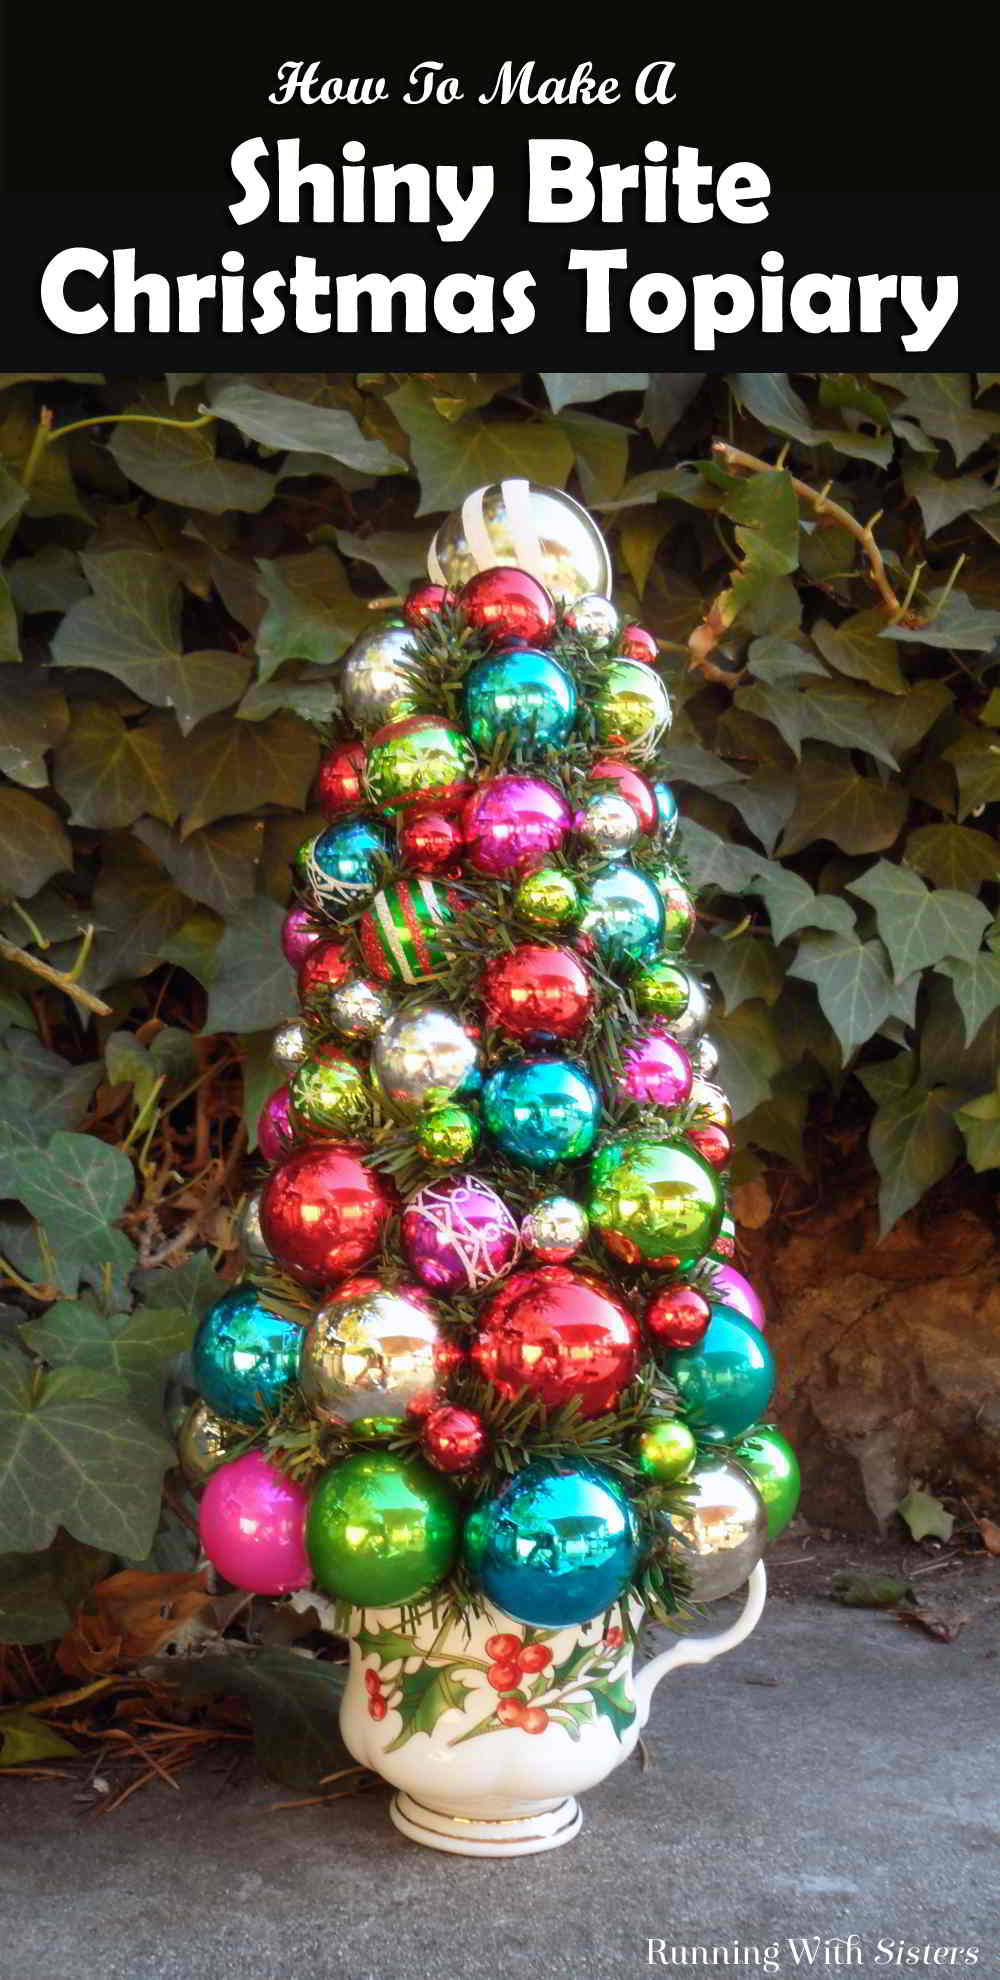 Shiny And Bright Christmas Teacup Topiary Running With Sisters